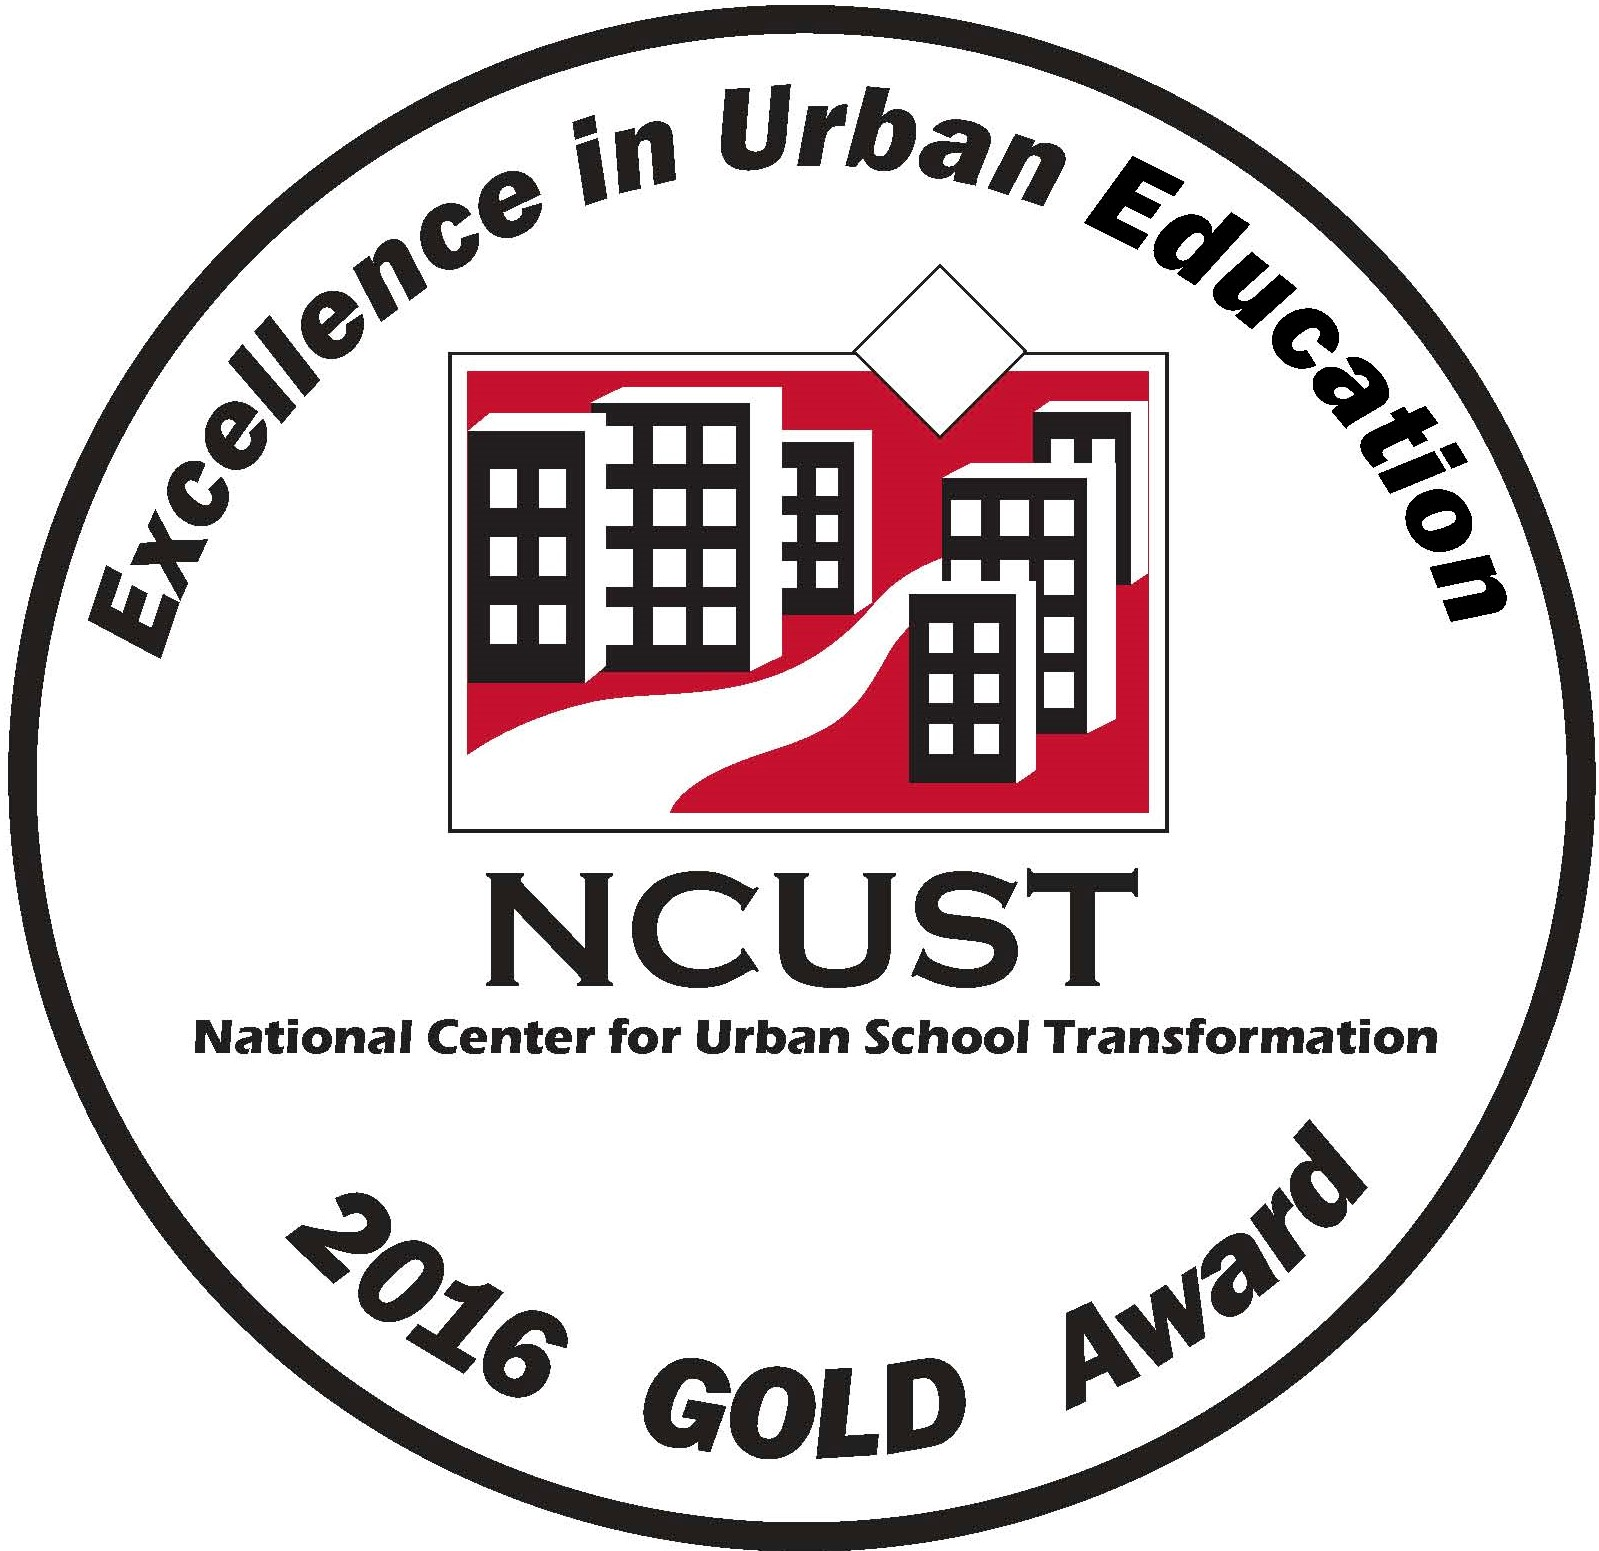 NCUST 2016 Gold Seal Award